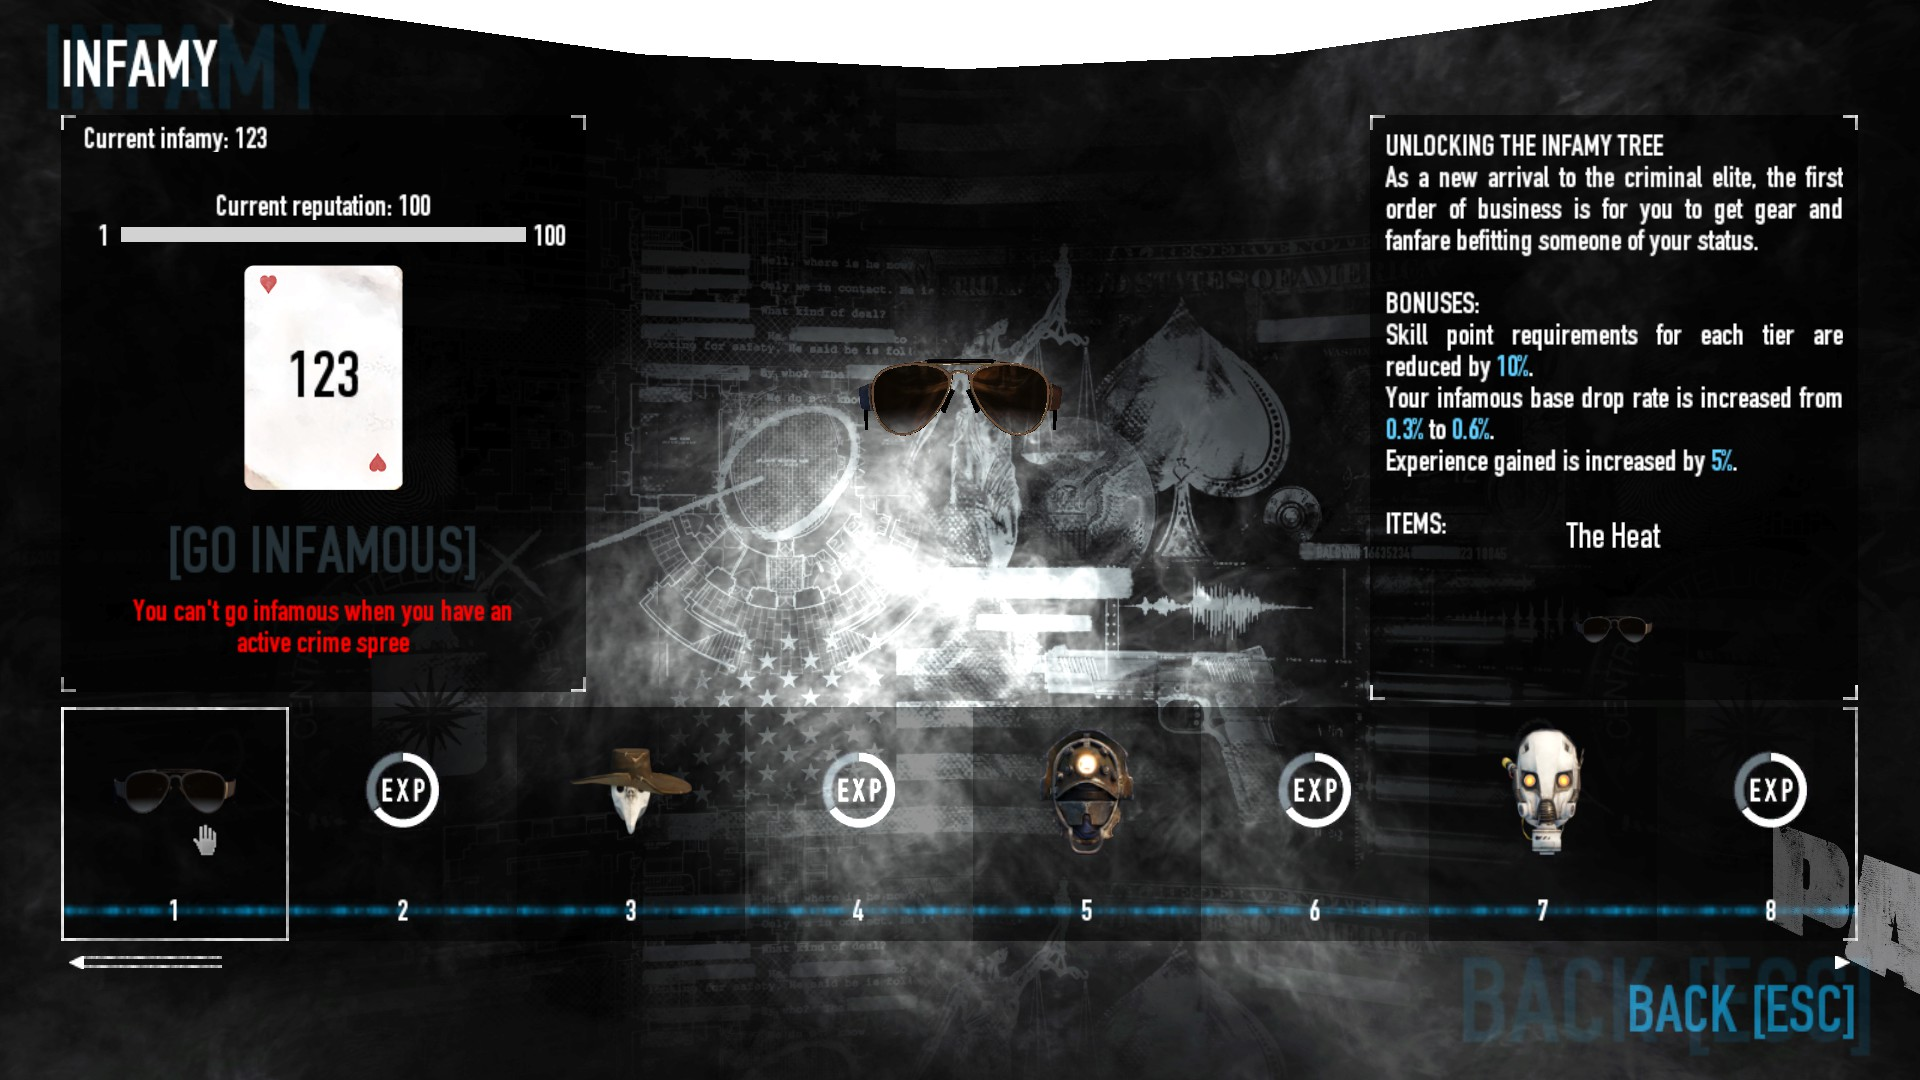 PAYDAY 2 - DSOD No DLC Build + Weapons Attachments & Class - Infamy Cost Reduction - 6EBD89D